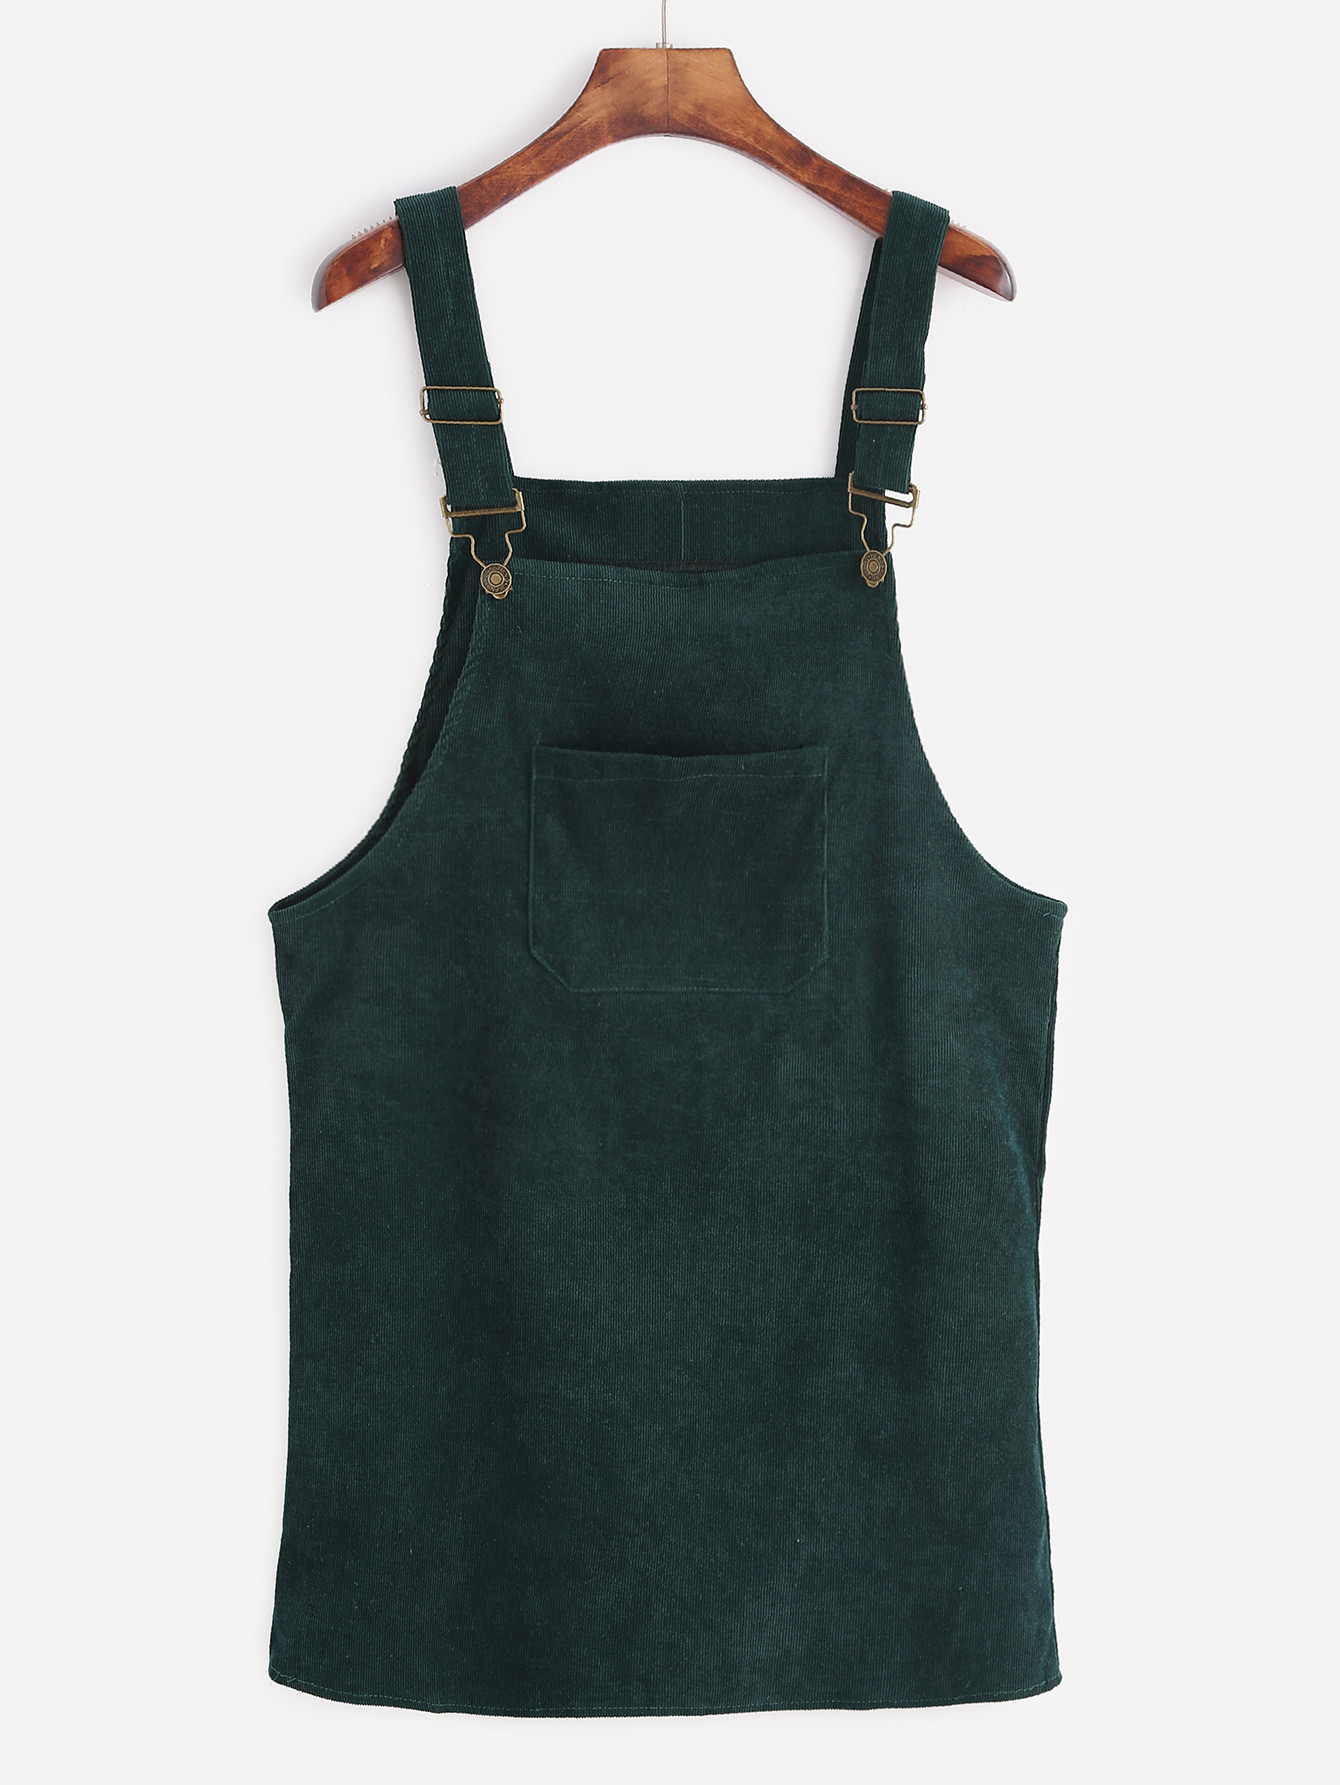 Dark Green Corduroy Overall Dress With Pocket